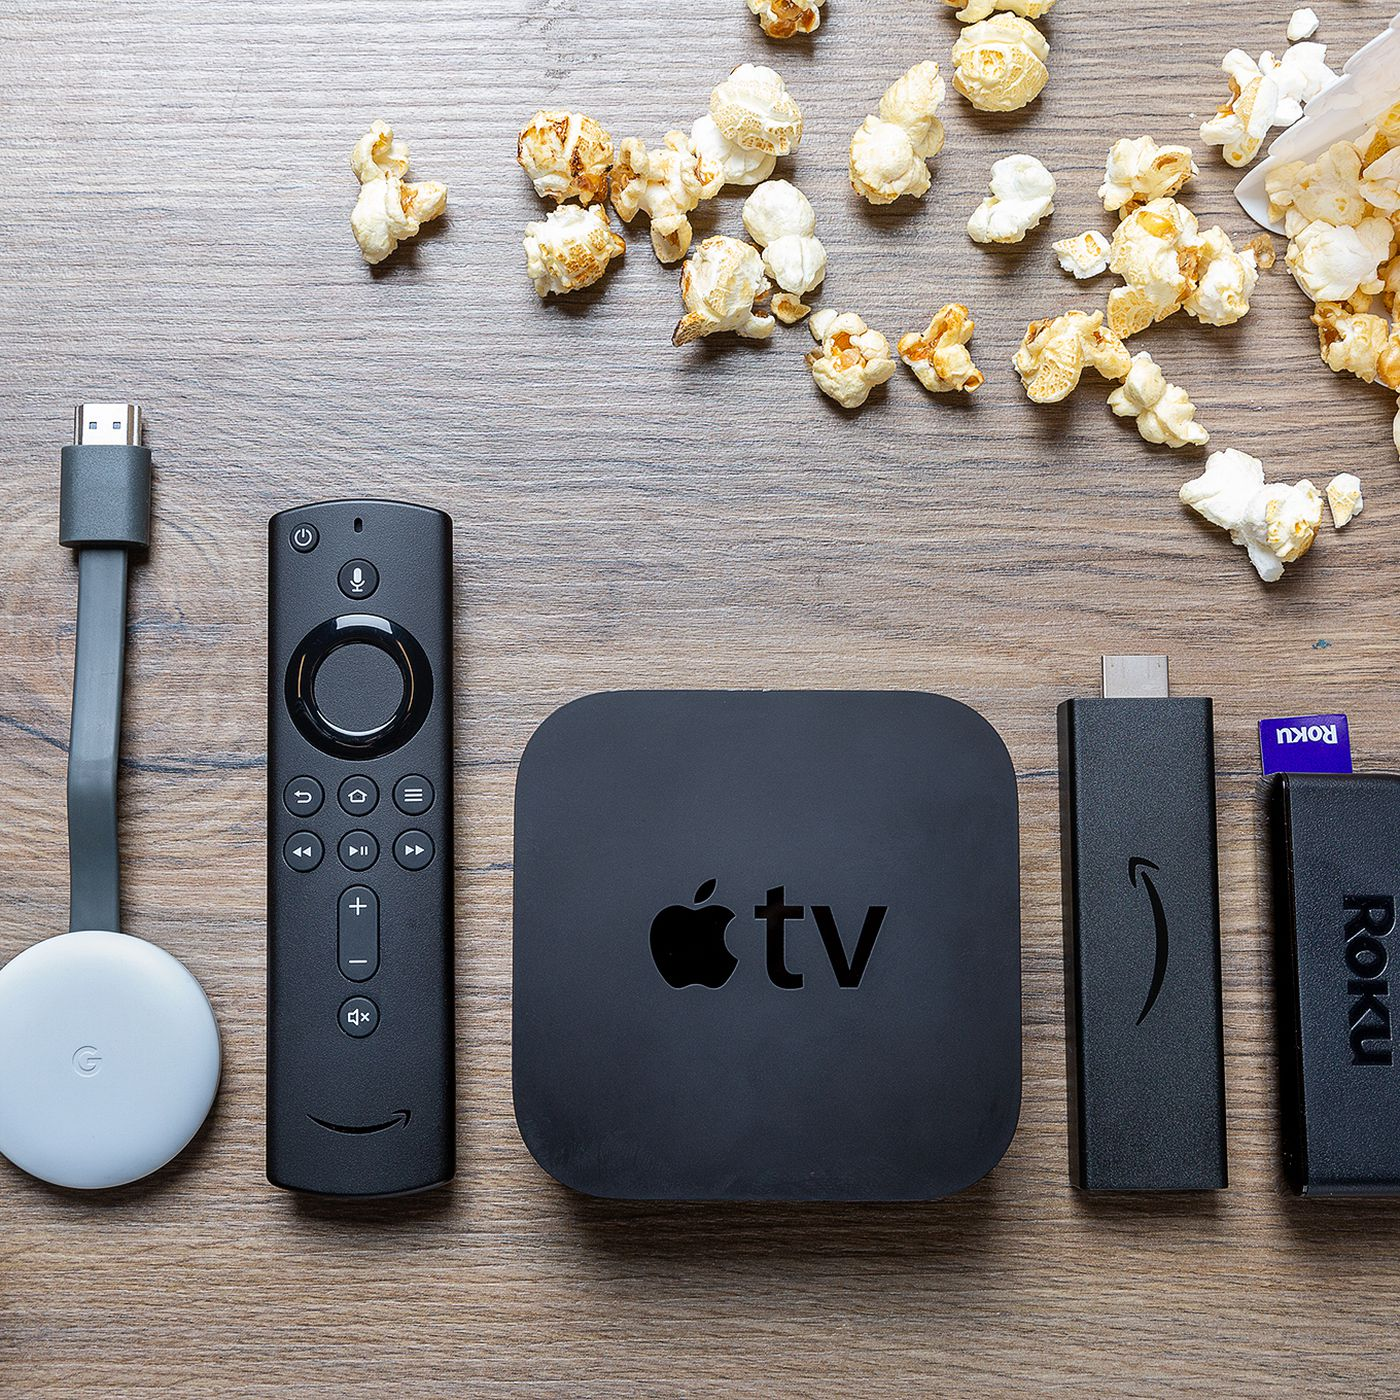 The best streaming video player to buy right now - The Verge